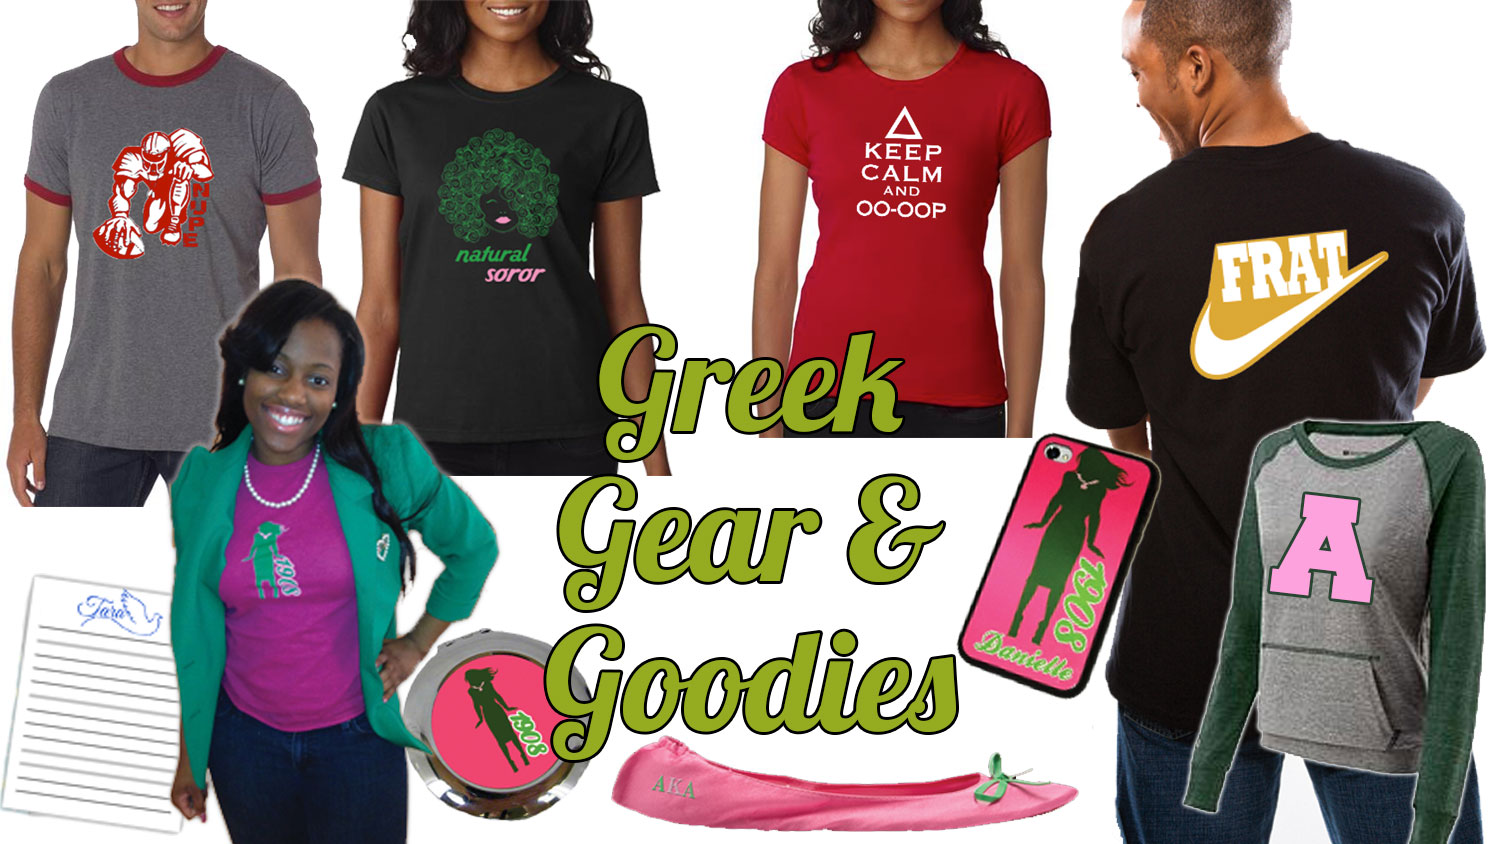 greek-gear-top-graphic.jpg